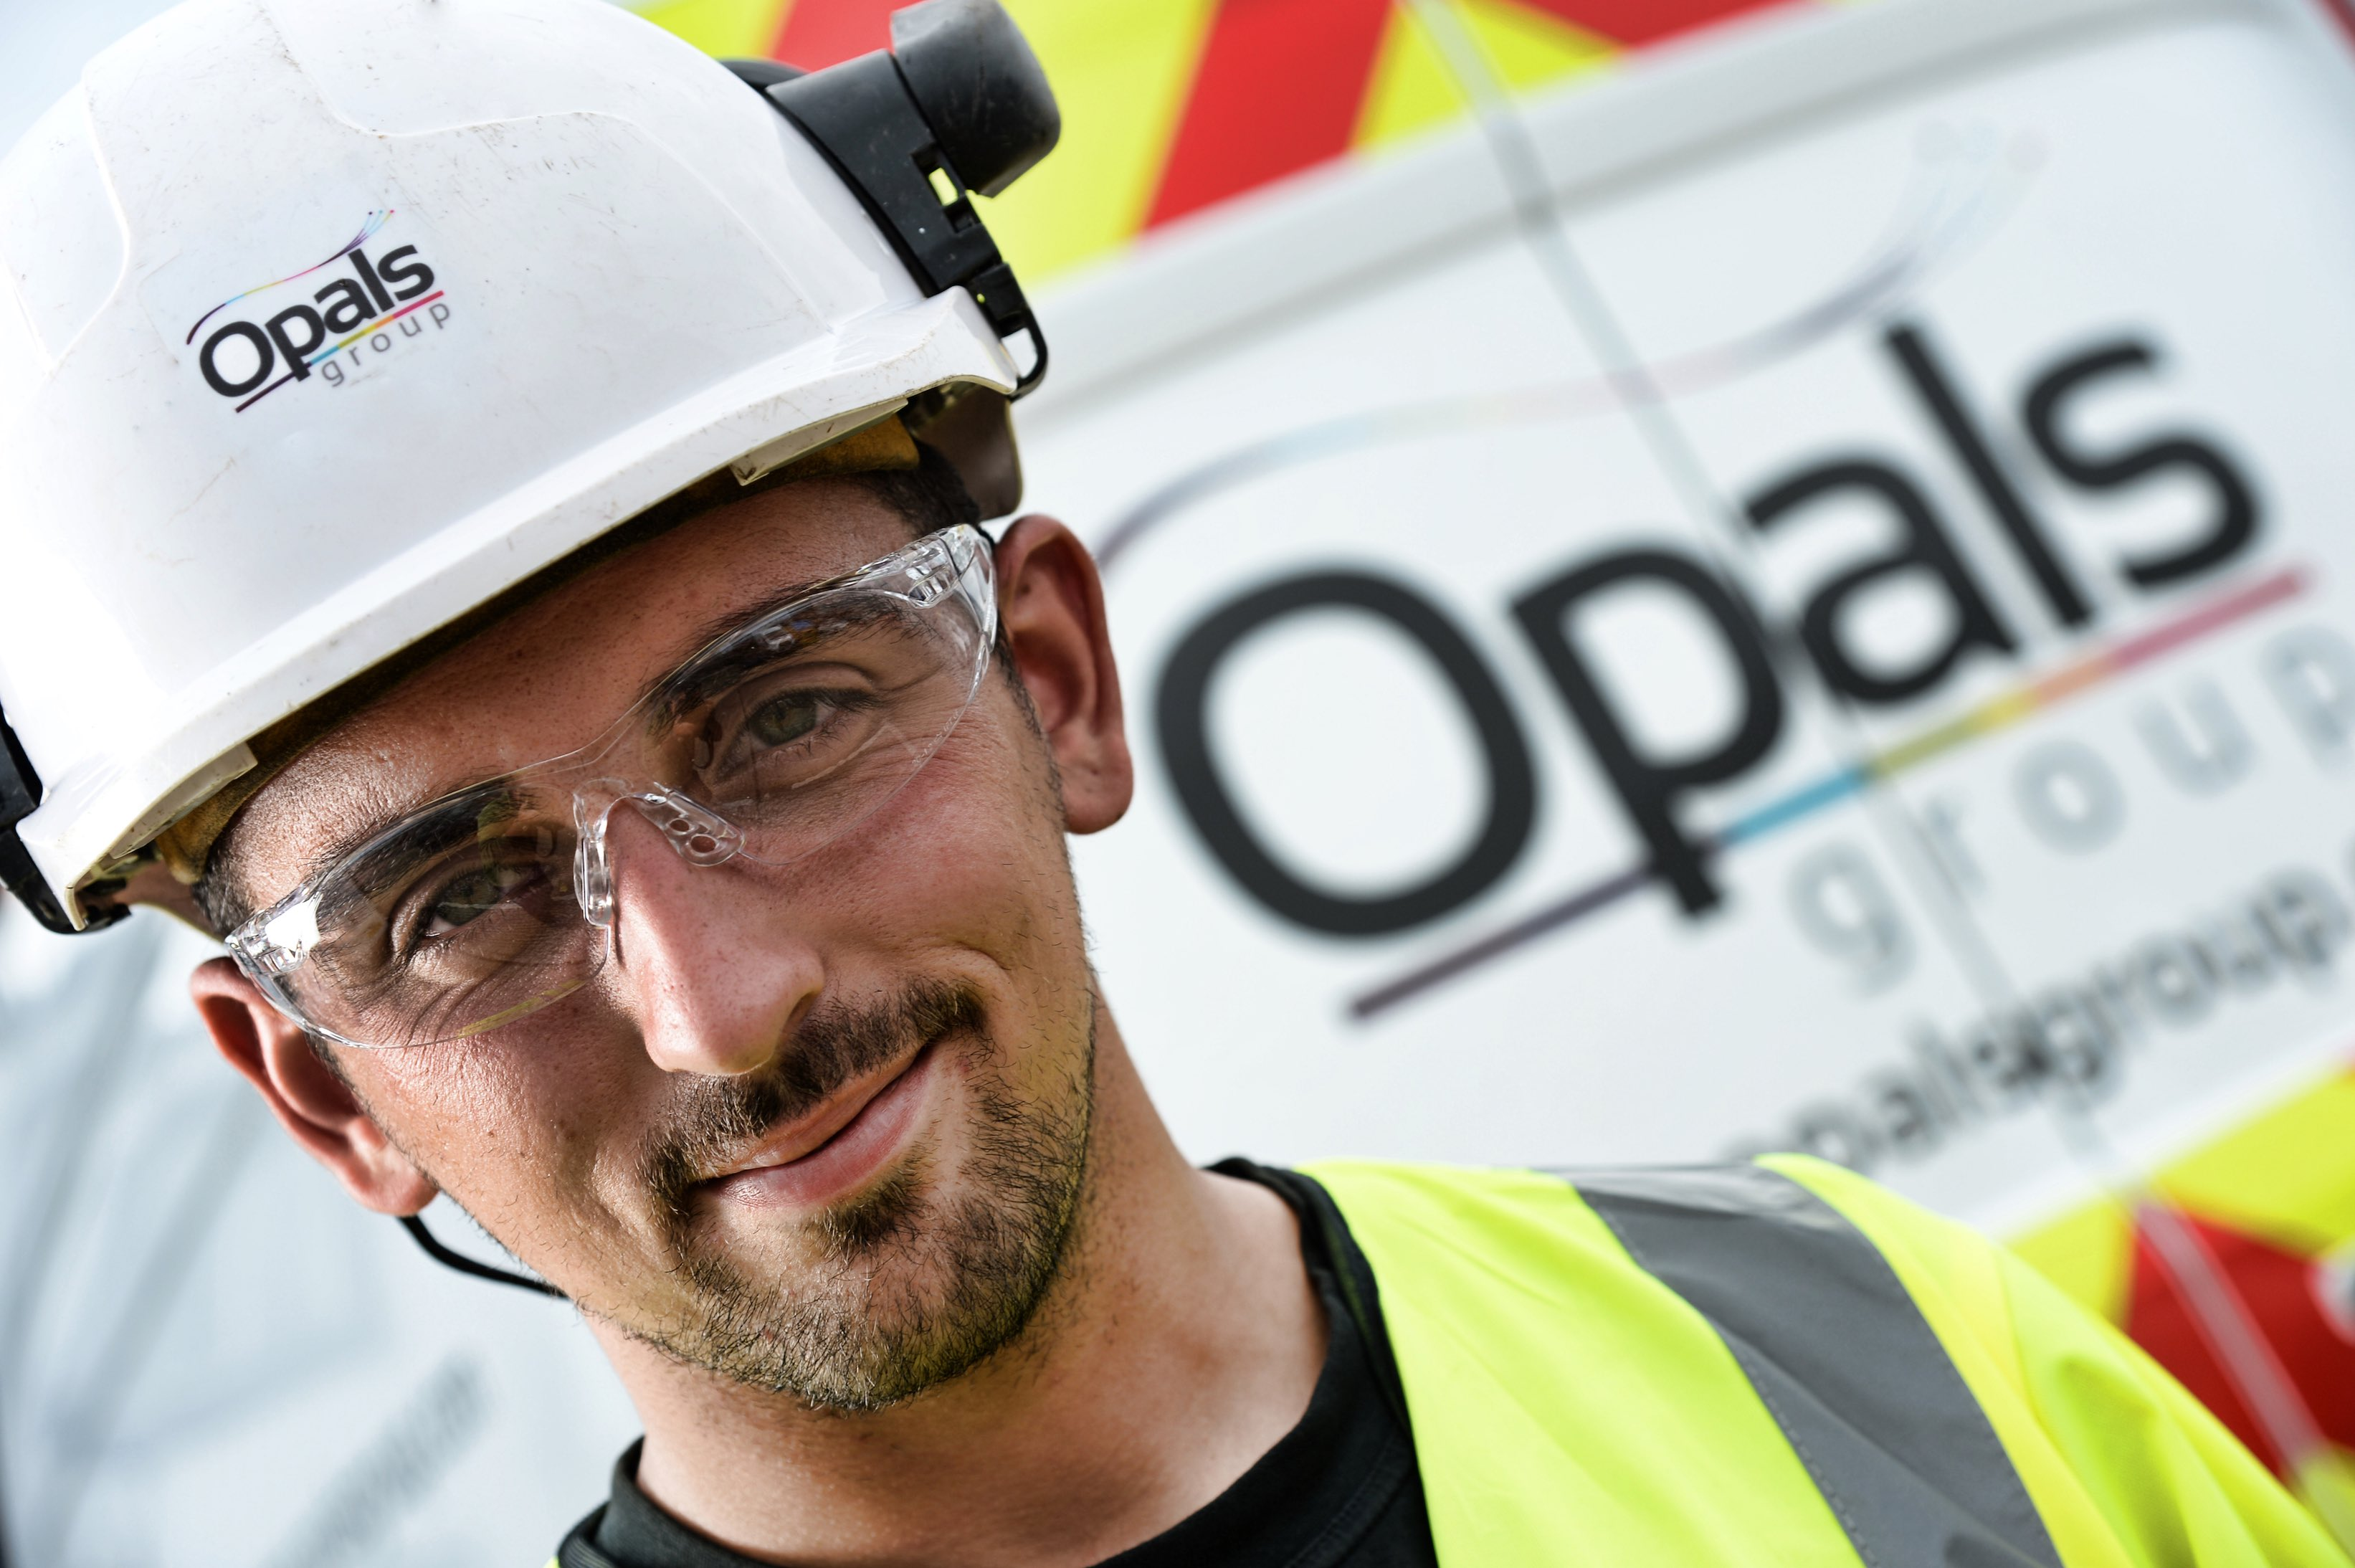 Opals Group look to take on Apprentices in Peterborough